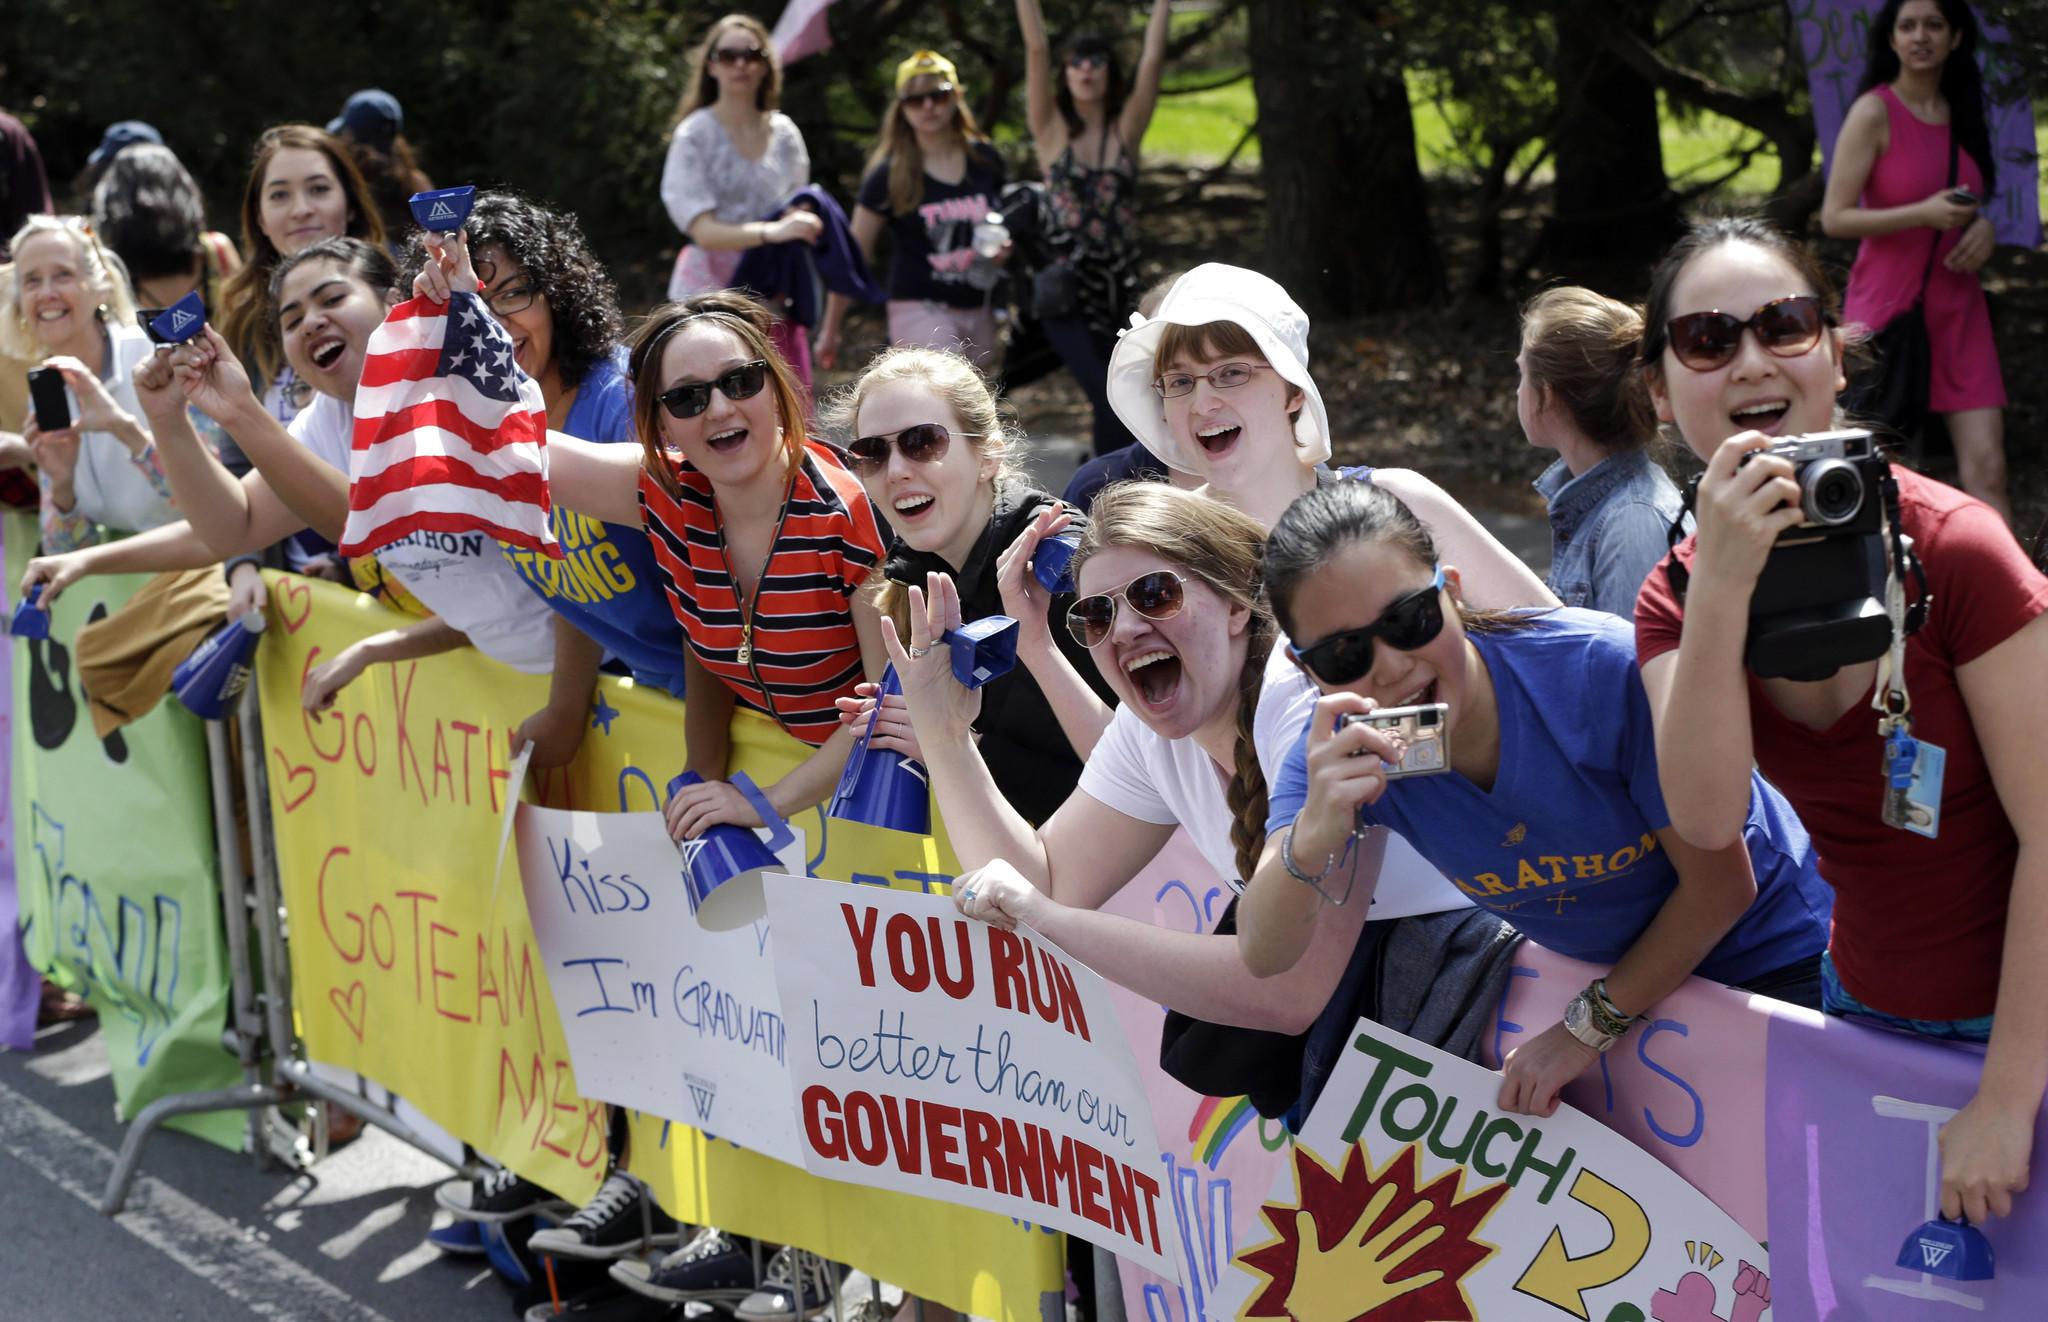 Spectators cheer near Wellesley College along the route of the 118th Boston Marathon.